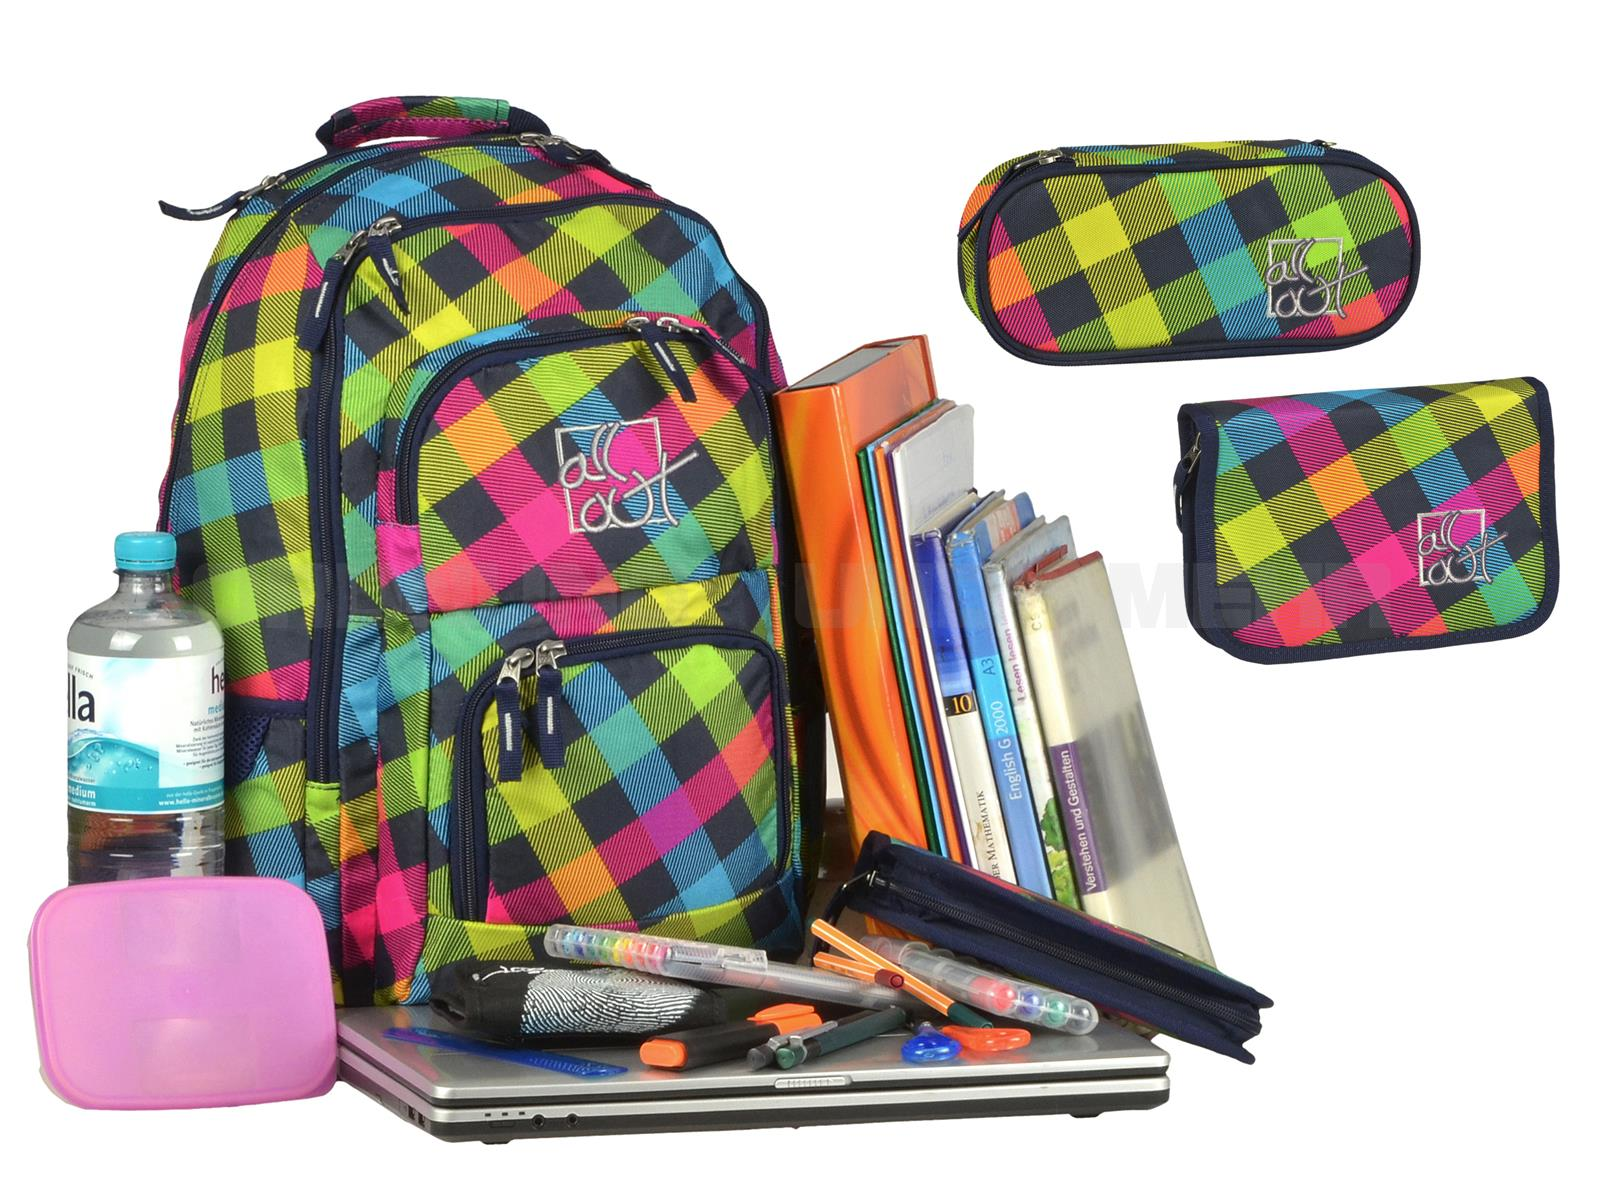 All Out Schulrucksack Sets - tolle Designs günstig im 3teiligen Set - Louth RAINBOW CHECK bunt